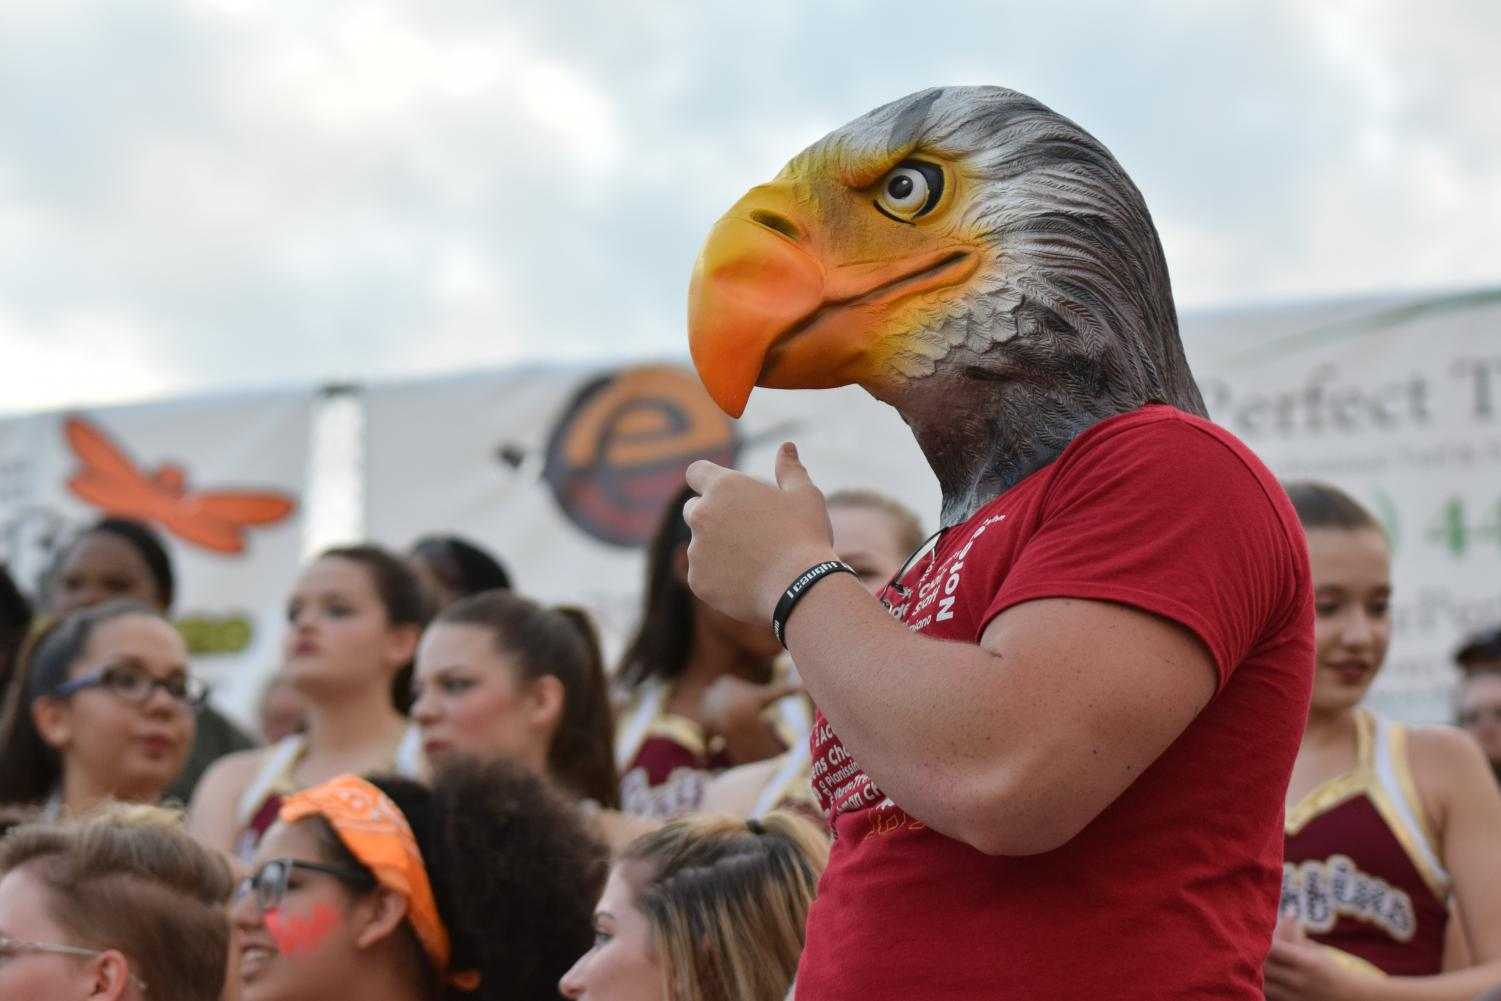 Senior Jackson Mattingly wears a plastic griffin's mask as he stands on the senior wall at the Aug. 18 varsity football game against Park Hill South at the North Kansas City District Stadium.